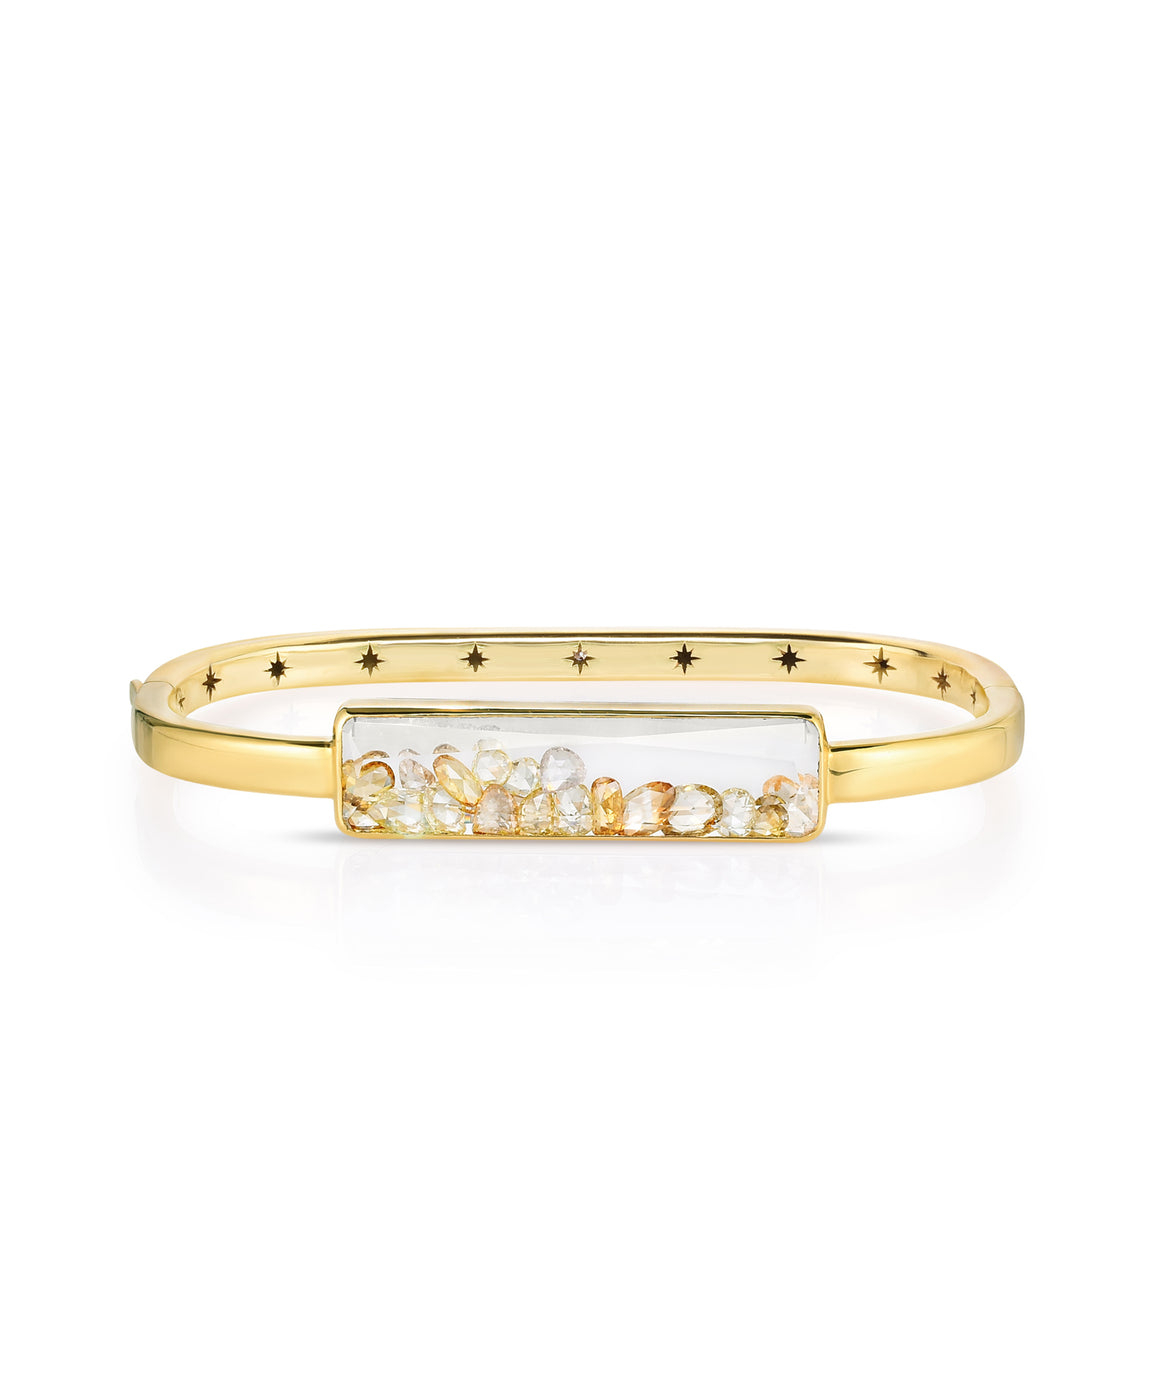 Yellow Diamond Baguette Square Shaker Bangle - Lesley Ann Jewels